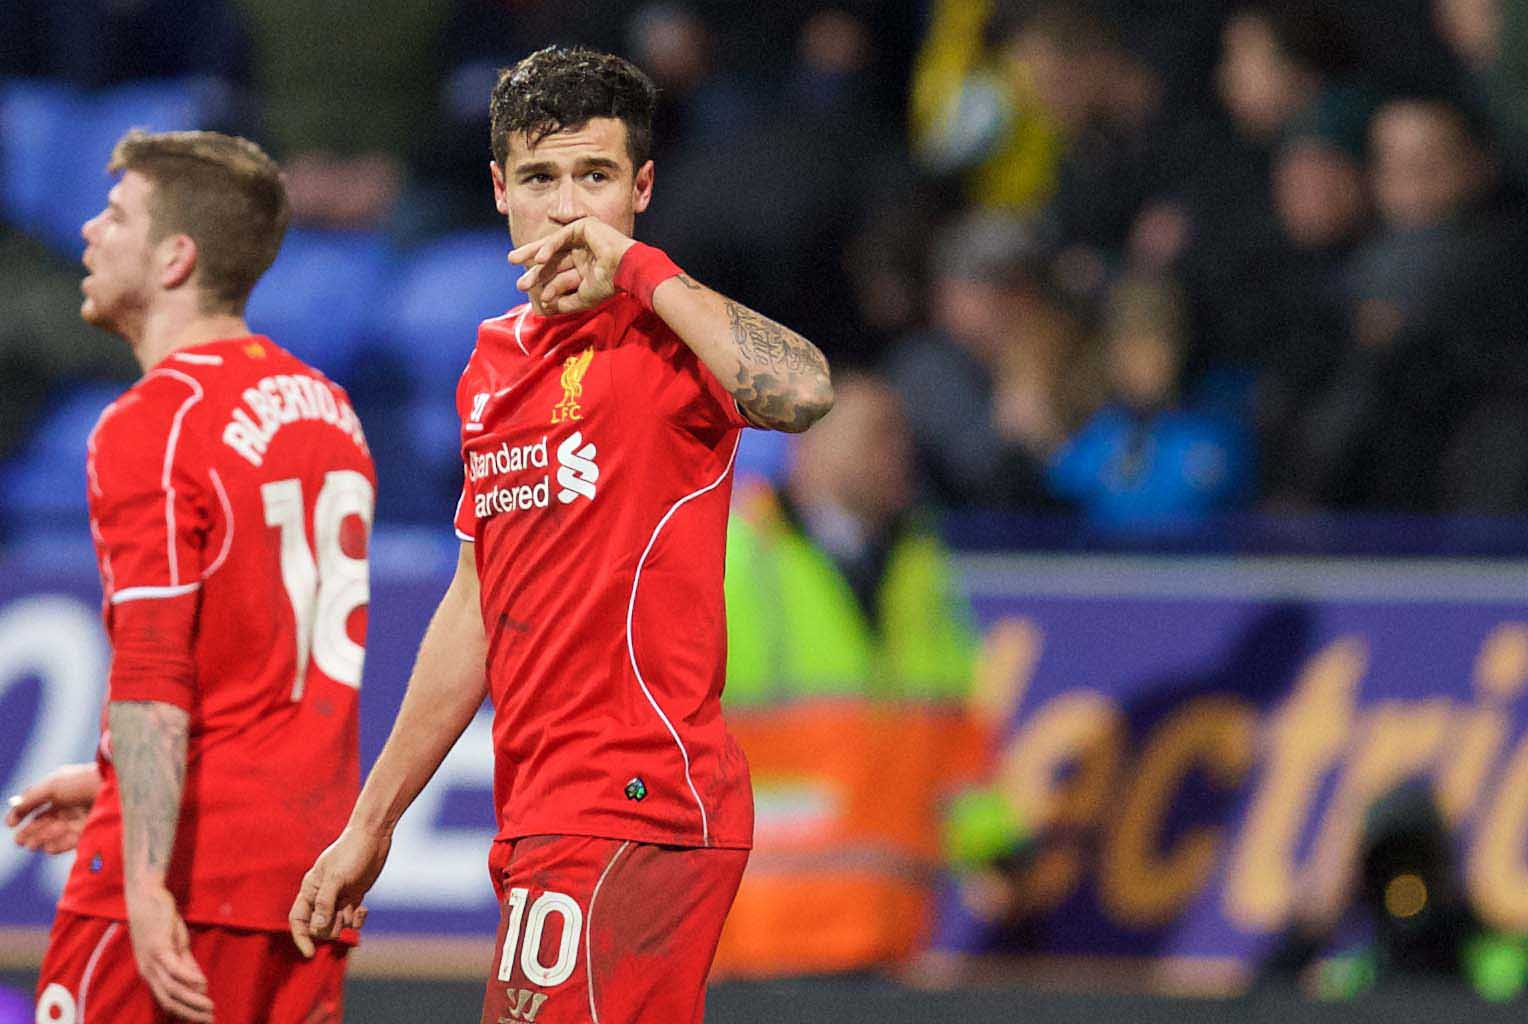 MATCH REVIEW: BOLTON 1 LIVERPOOL 2